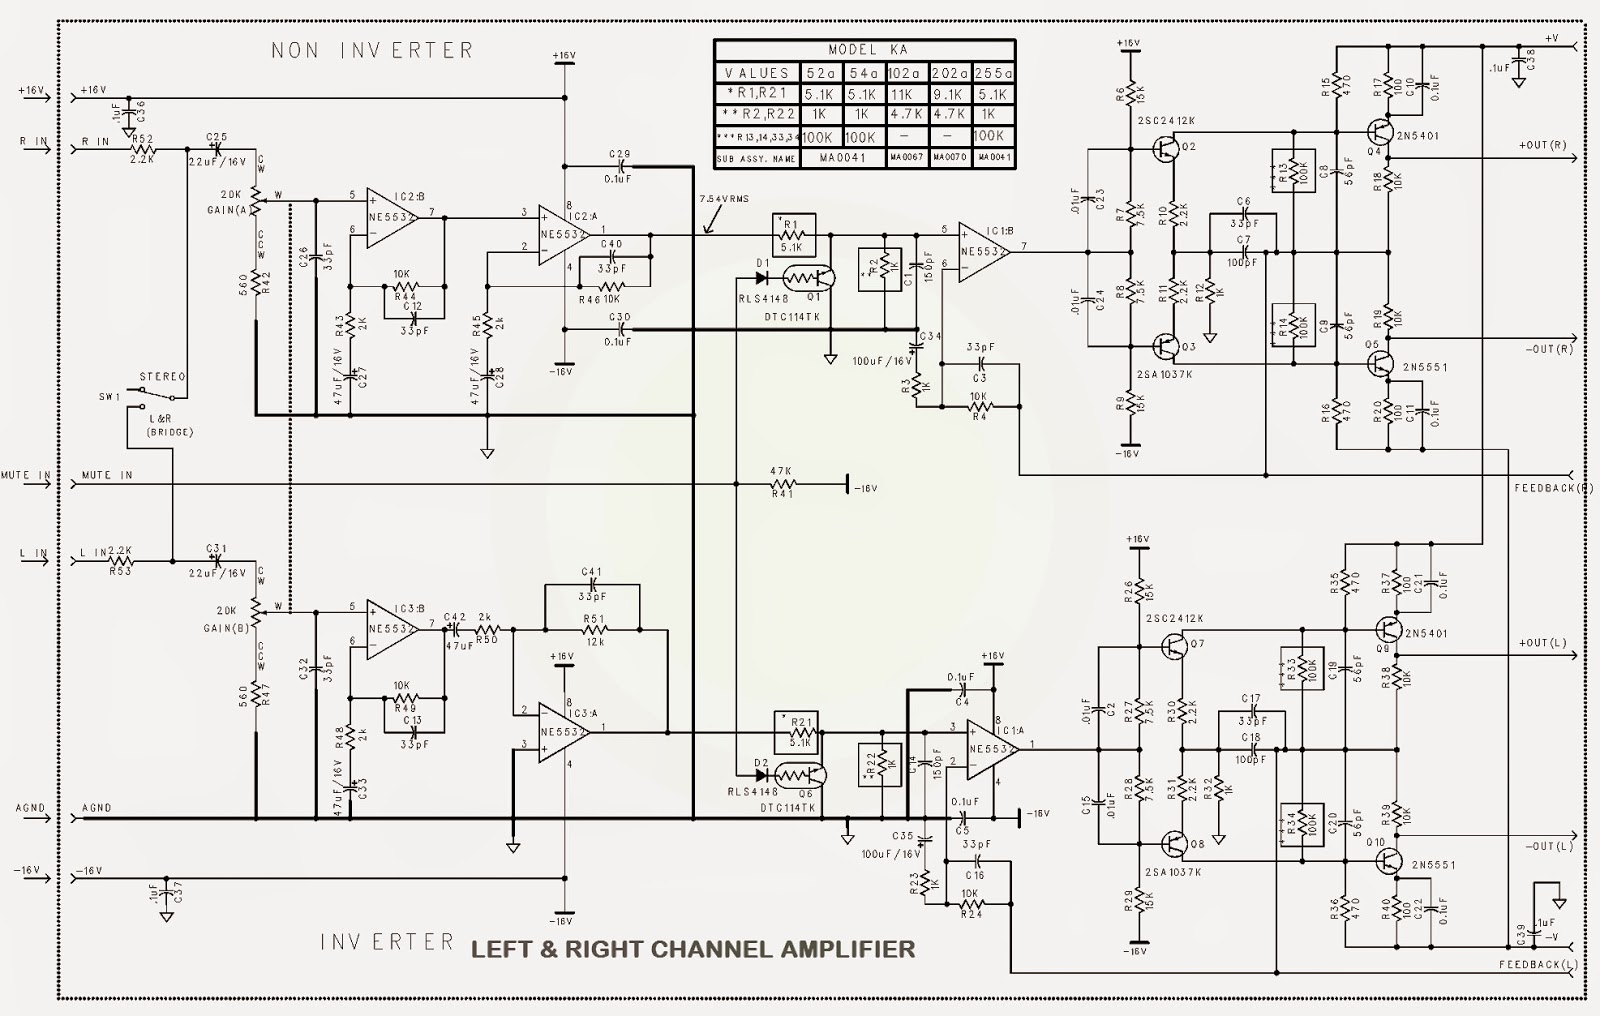 Infinity Car Stereo Wiring Diagram Free Download Wiring Diagram